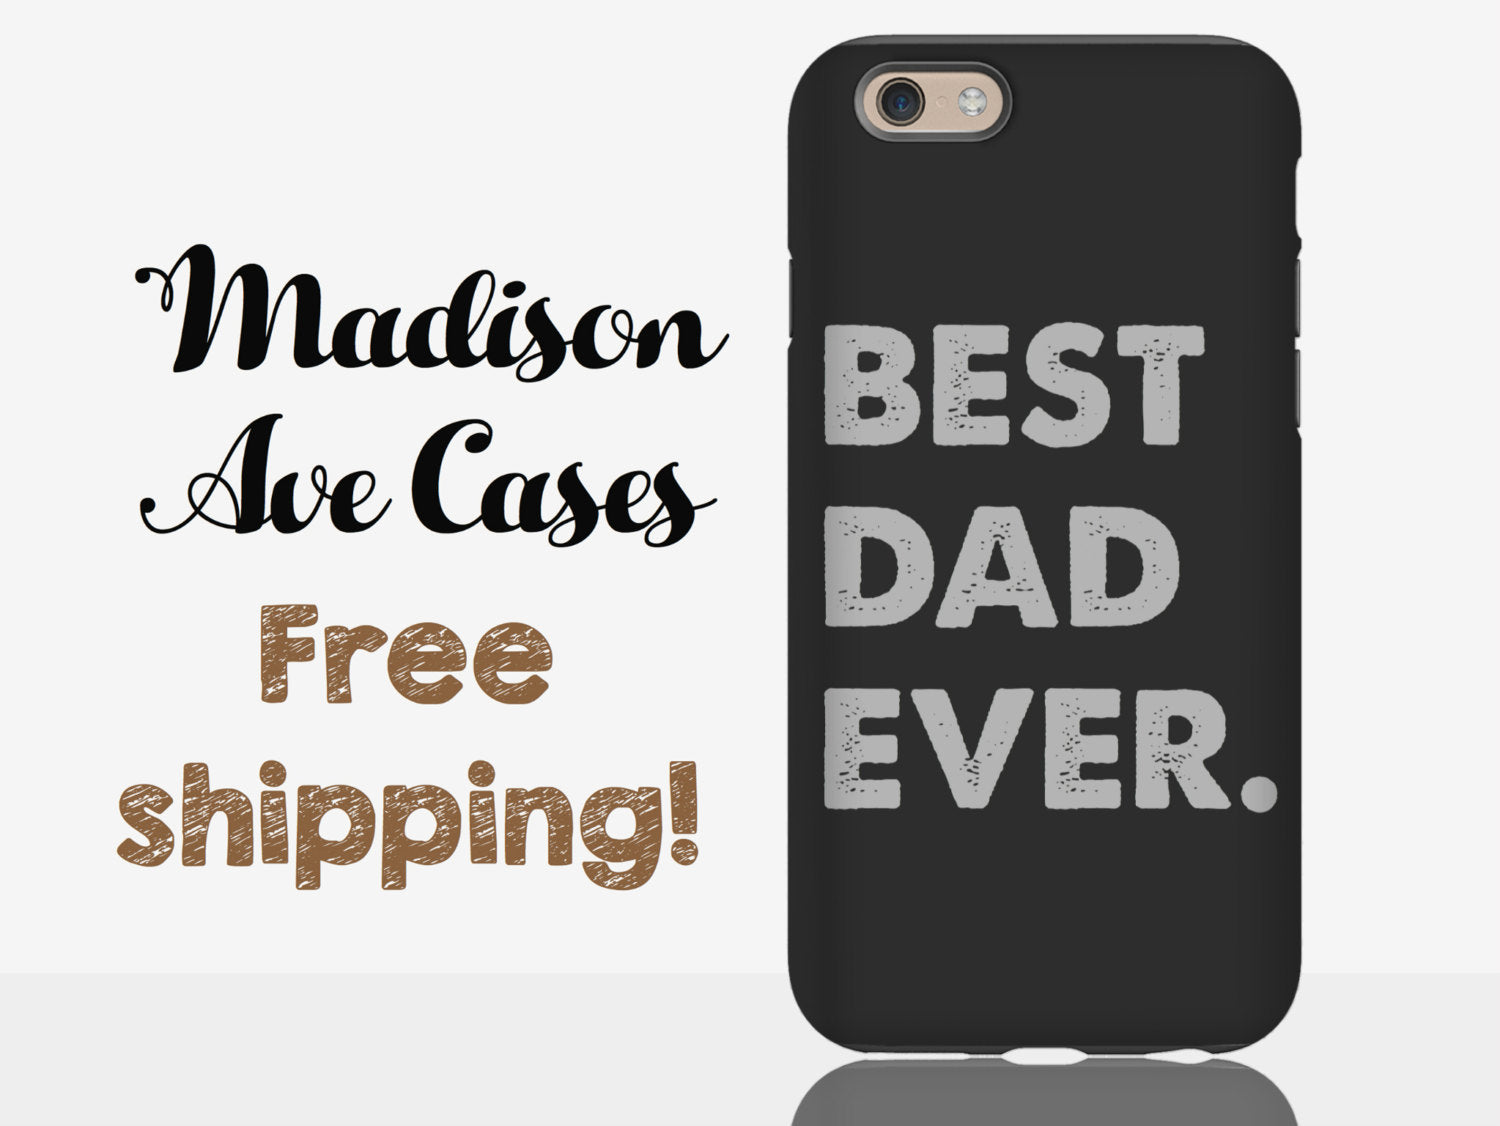 best dad ever cool man guy christmas gift kids fathers day manly grandpa birthday customize samsung galaxy s5 s6 s7 iphone 4 5 6 phone case - Best Dad Christmas Gifts